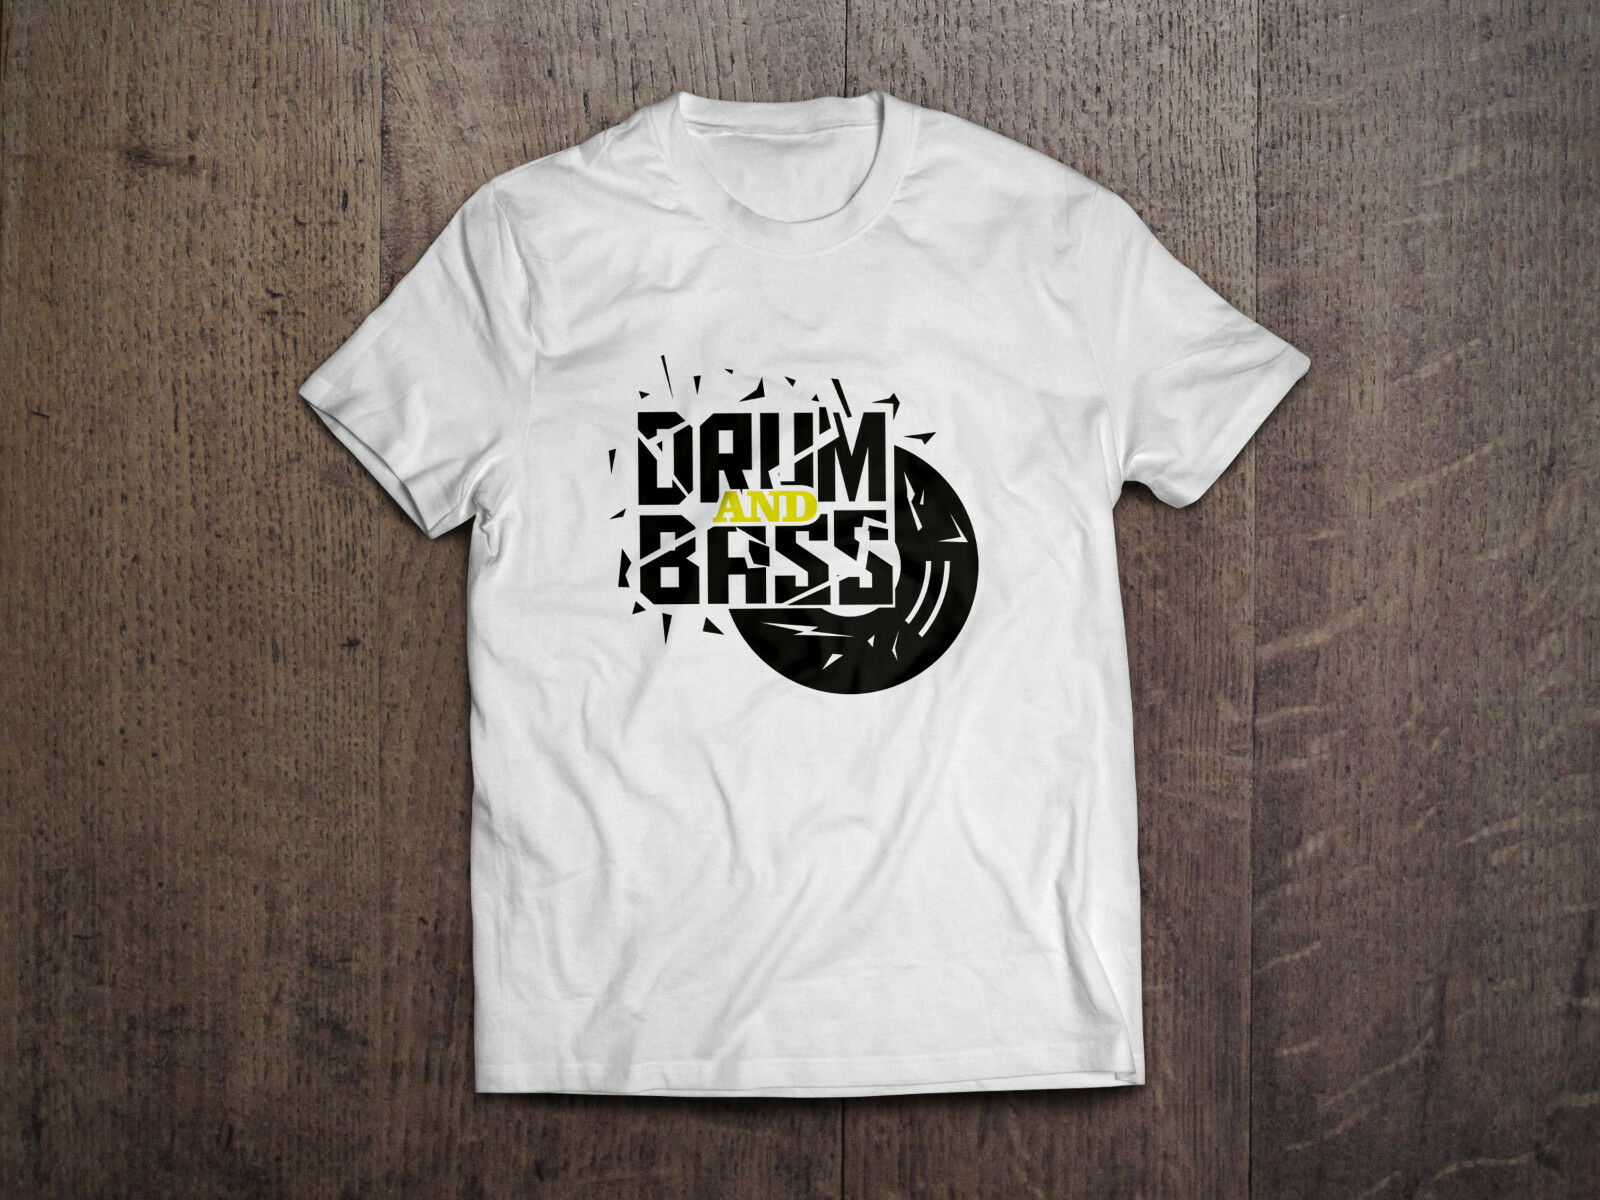 DNB Drum and Bass Vinyl Reggae Jump Up Rave T-Shirt Shirt NEU!